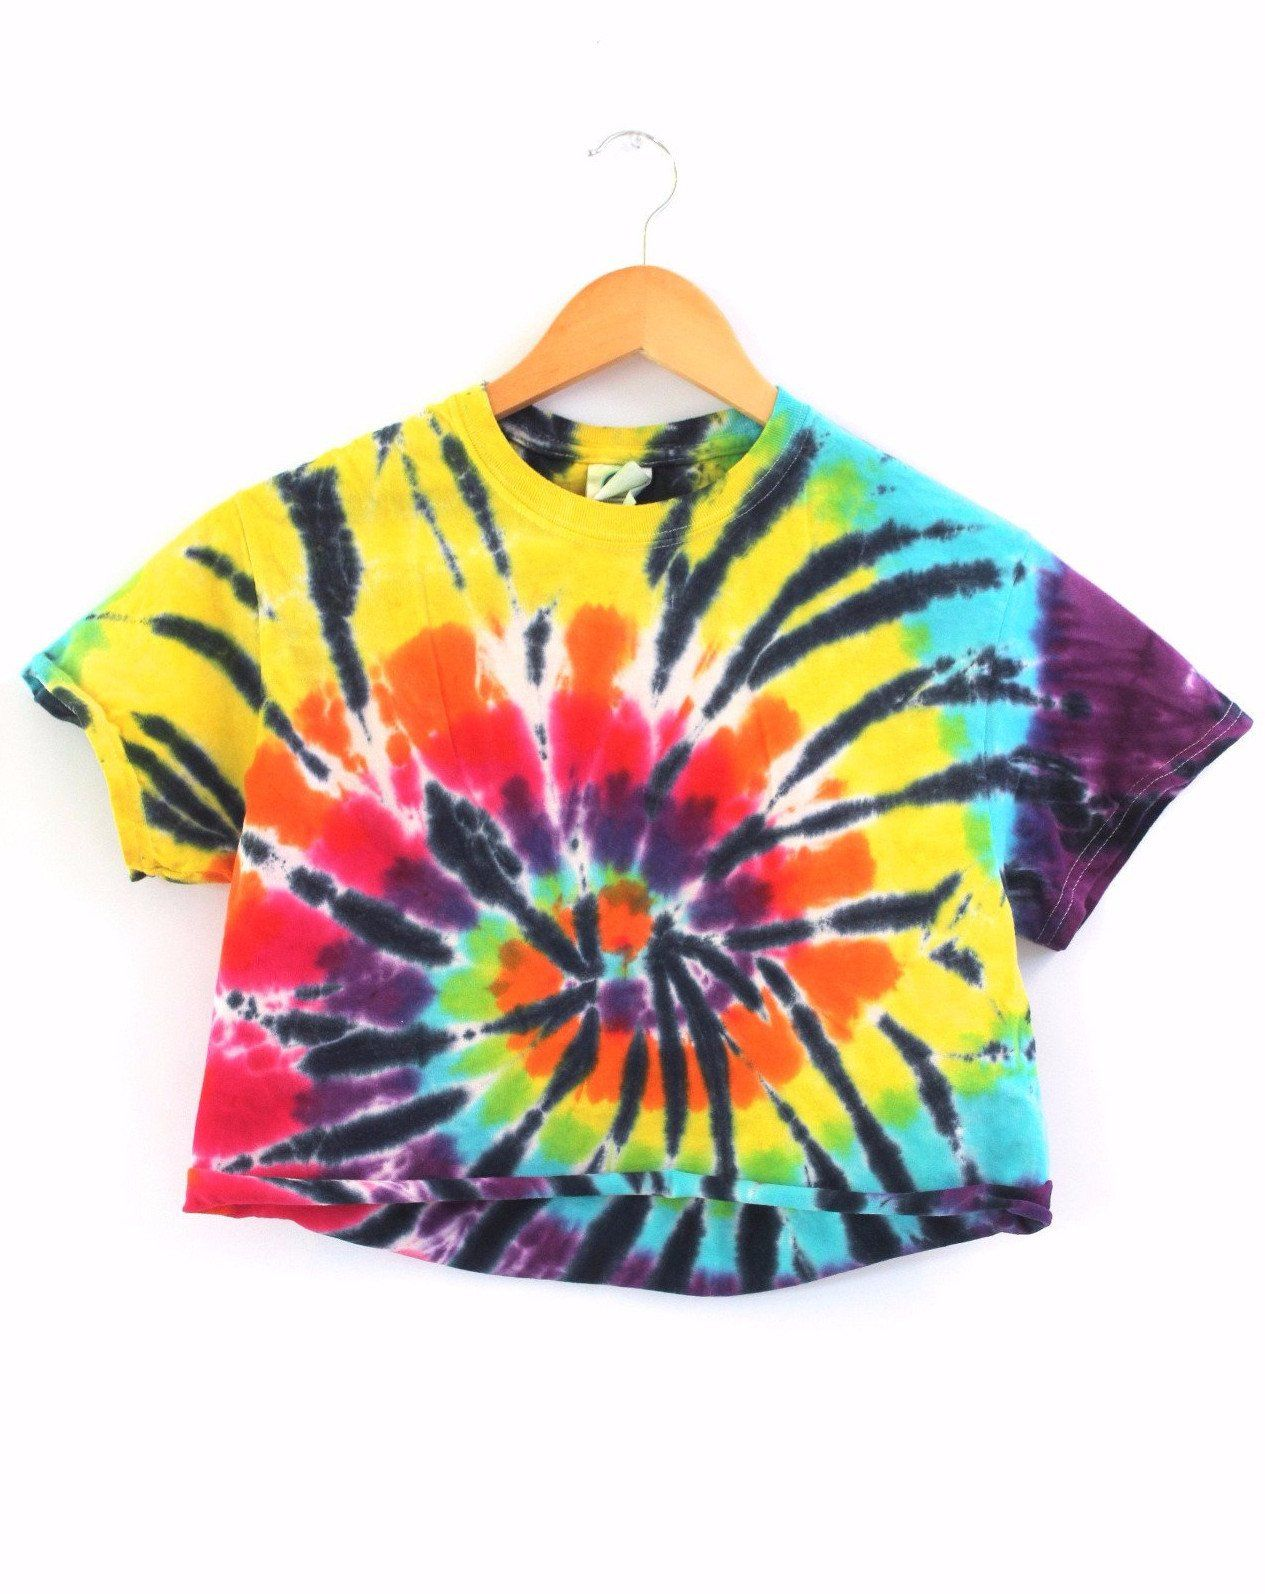 89cd5d09fb5 Chameleon Tie-Dye Cropped Tee | clothes/shoes I would wear | Tie Dye ...